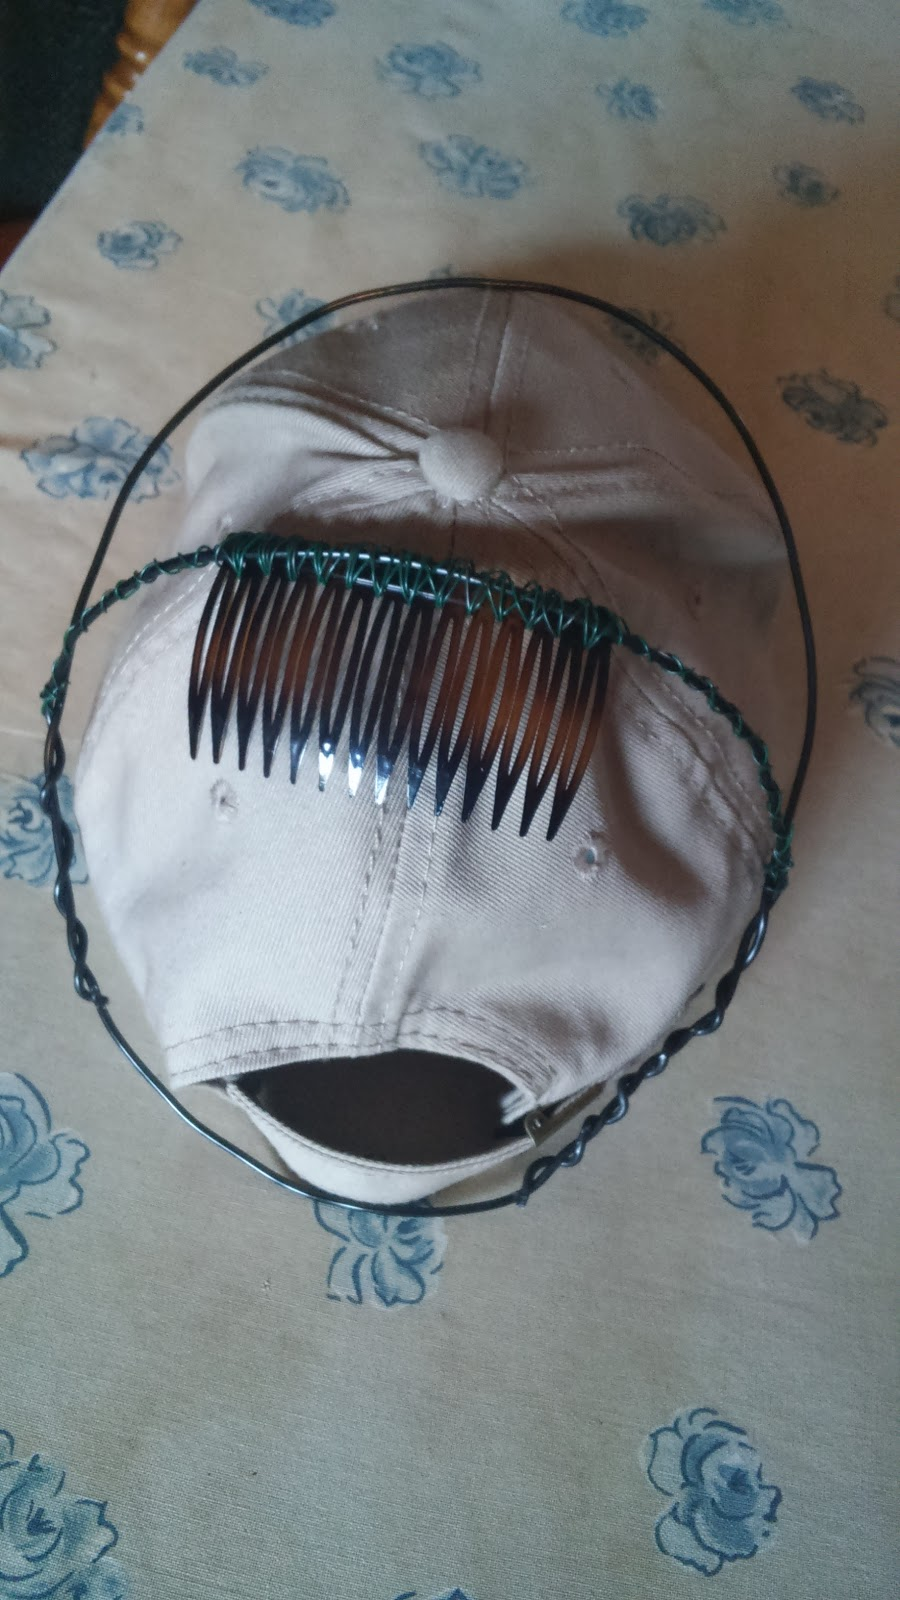 The Sewing Goatherd: Accessorising the Ball Gown - The Headdress